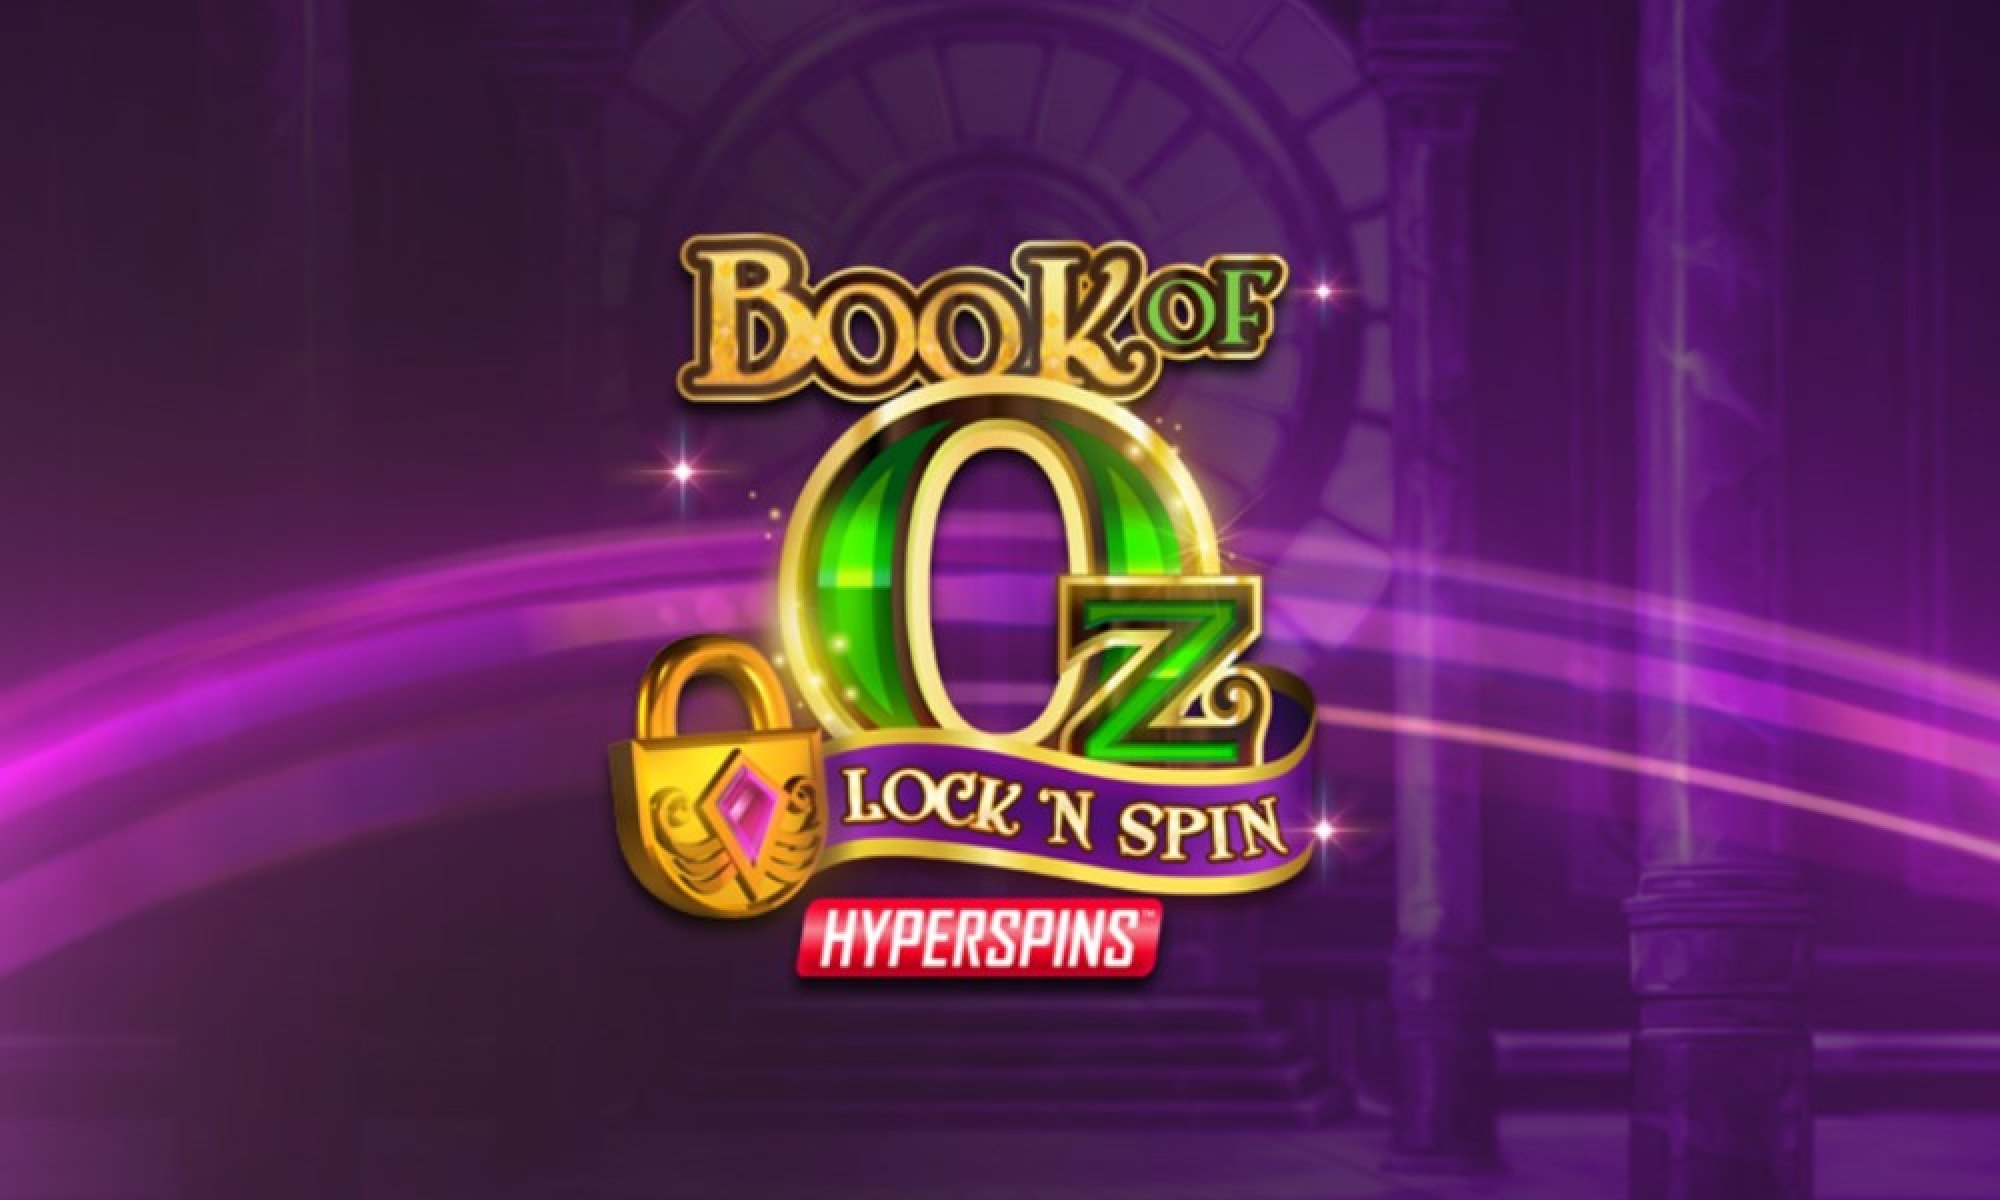 Book of Oz Lock 'N Spin Online Slot Demo Game by Triple Edge Studios